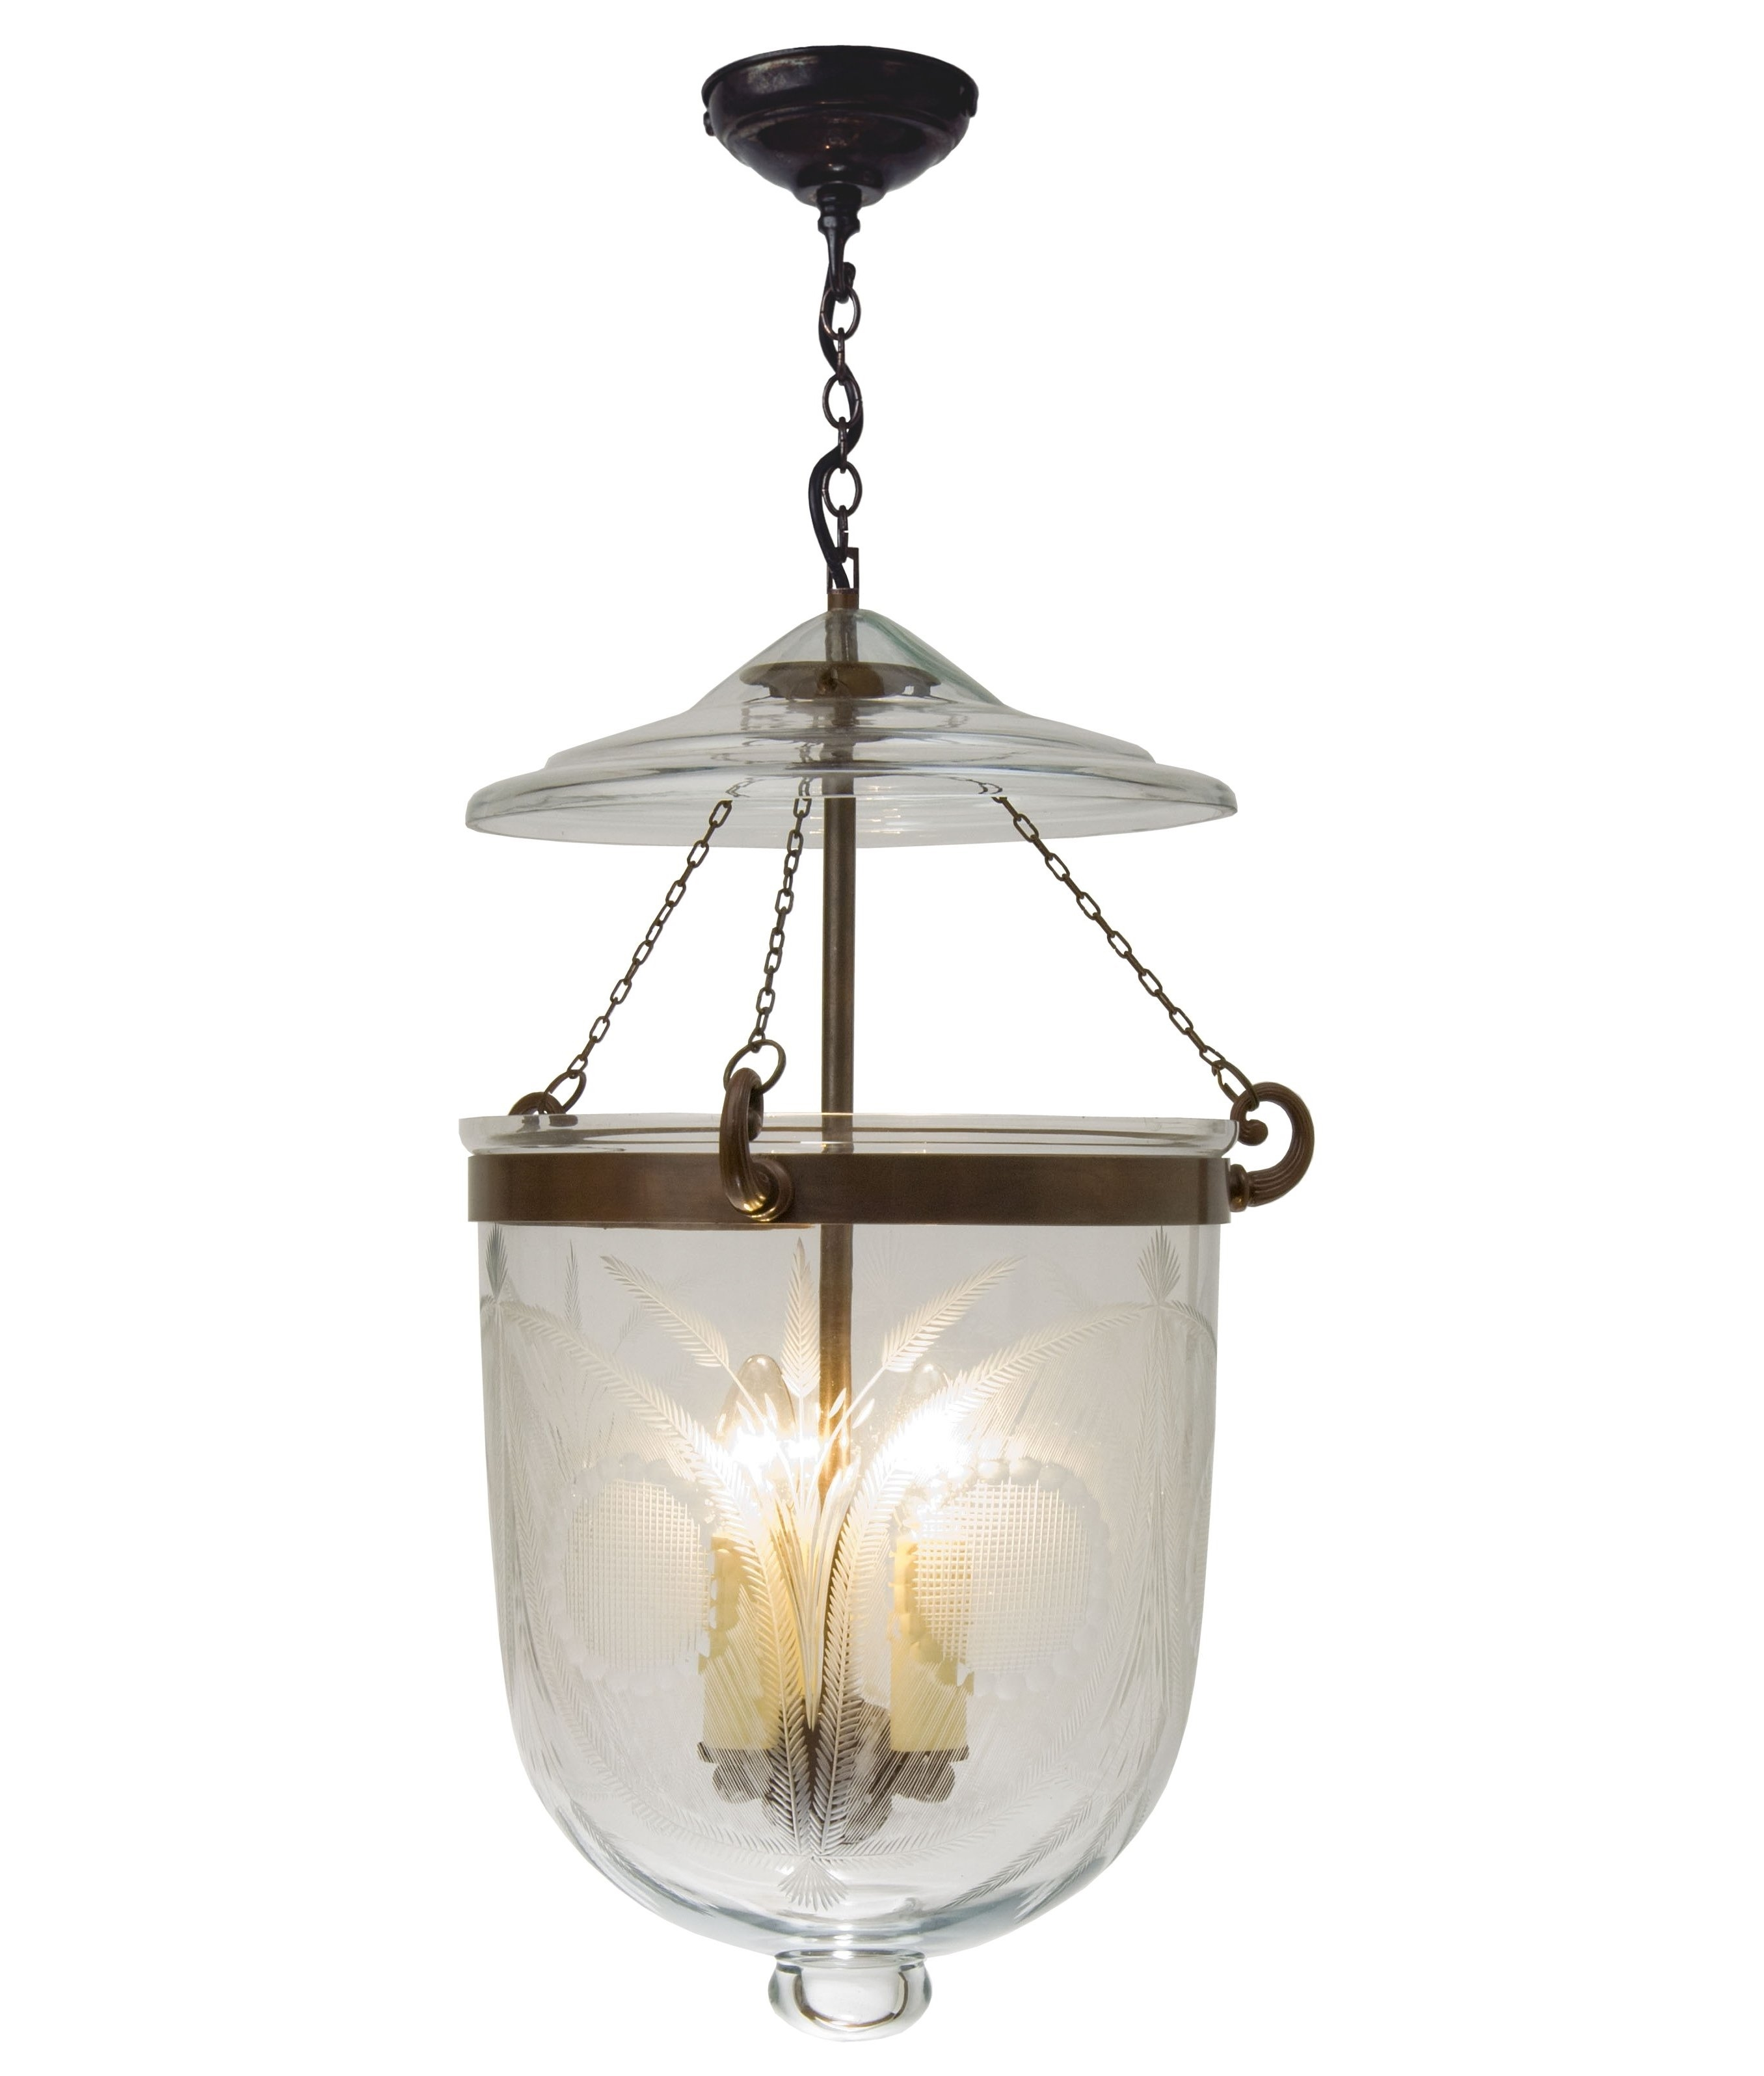 Georgian Lantern With Fern Etched Glass And Measuring 310mm In Diameter